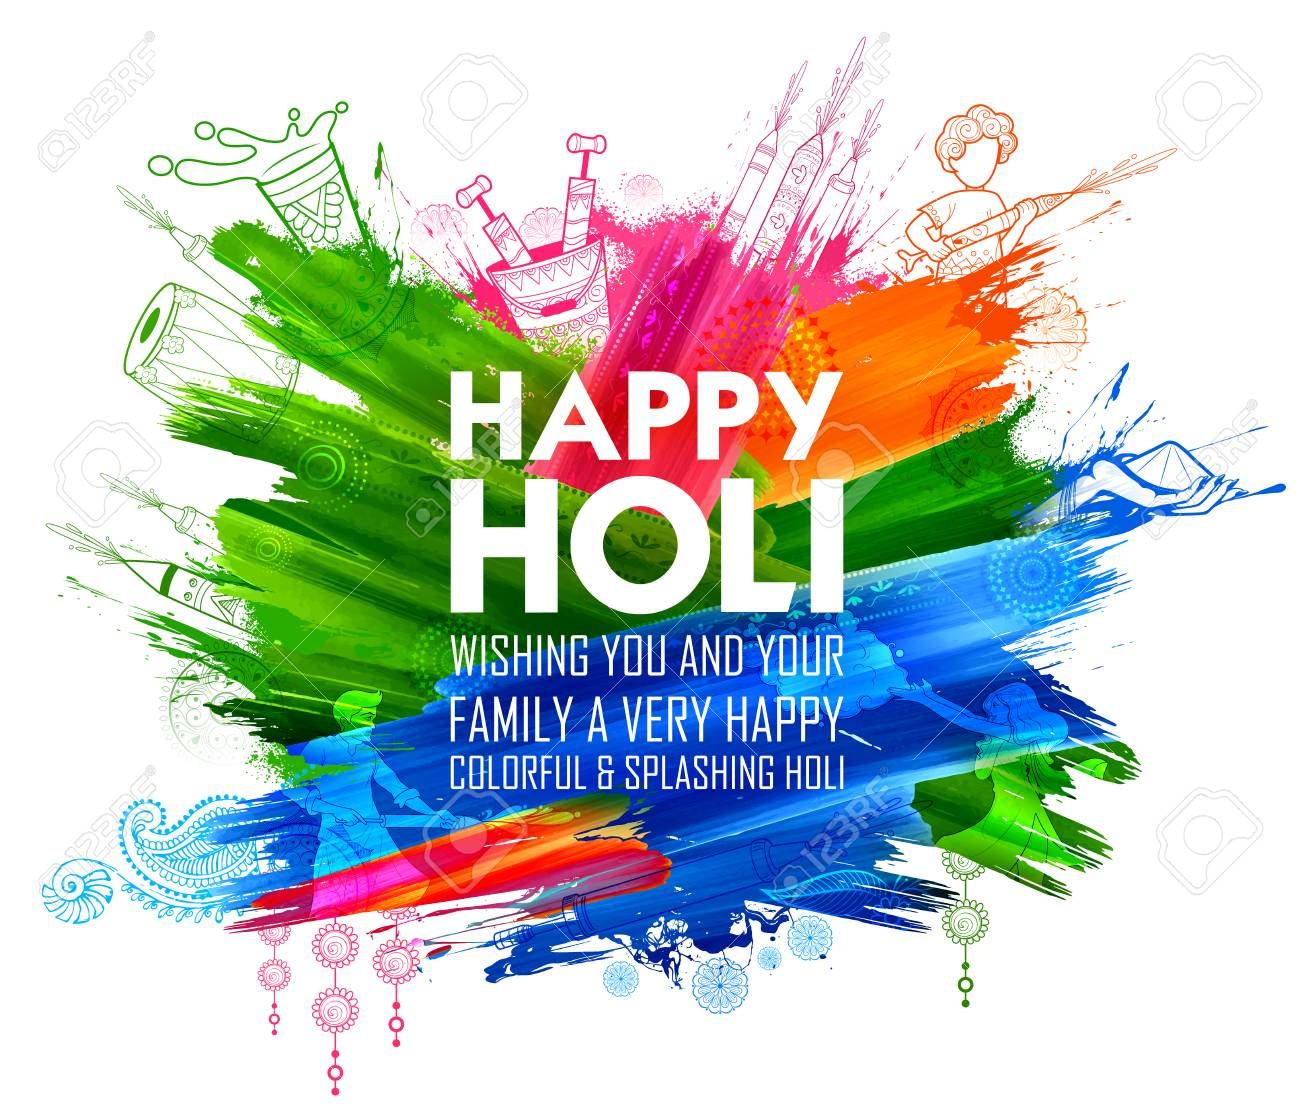 Happy Holi Background for Festival of Colors celebration greetings - 95883763